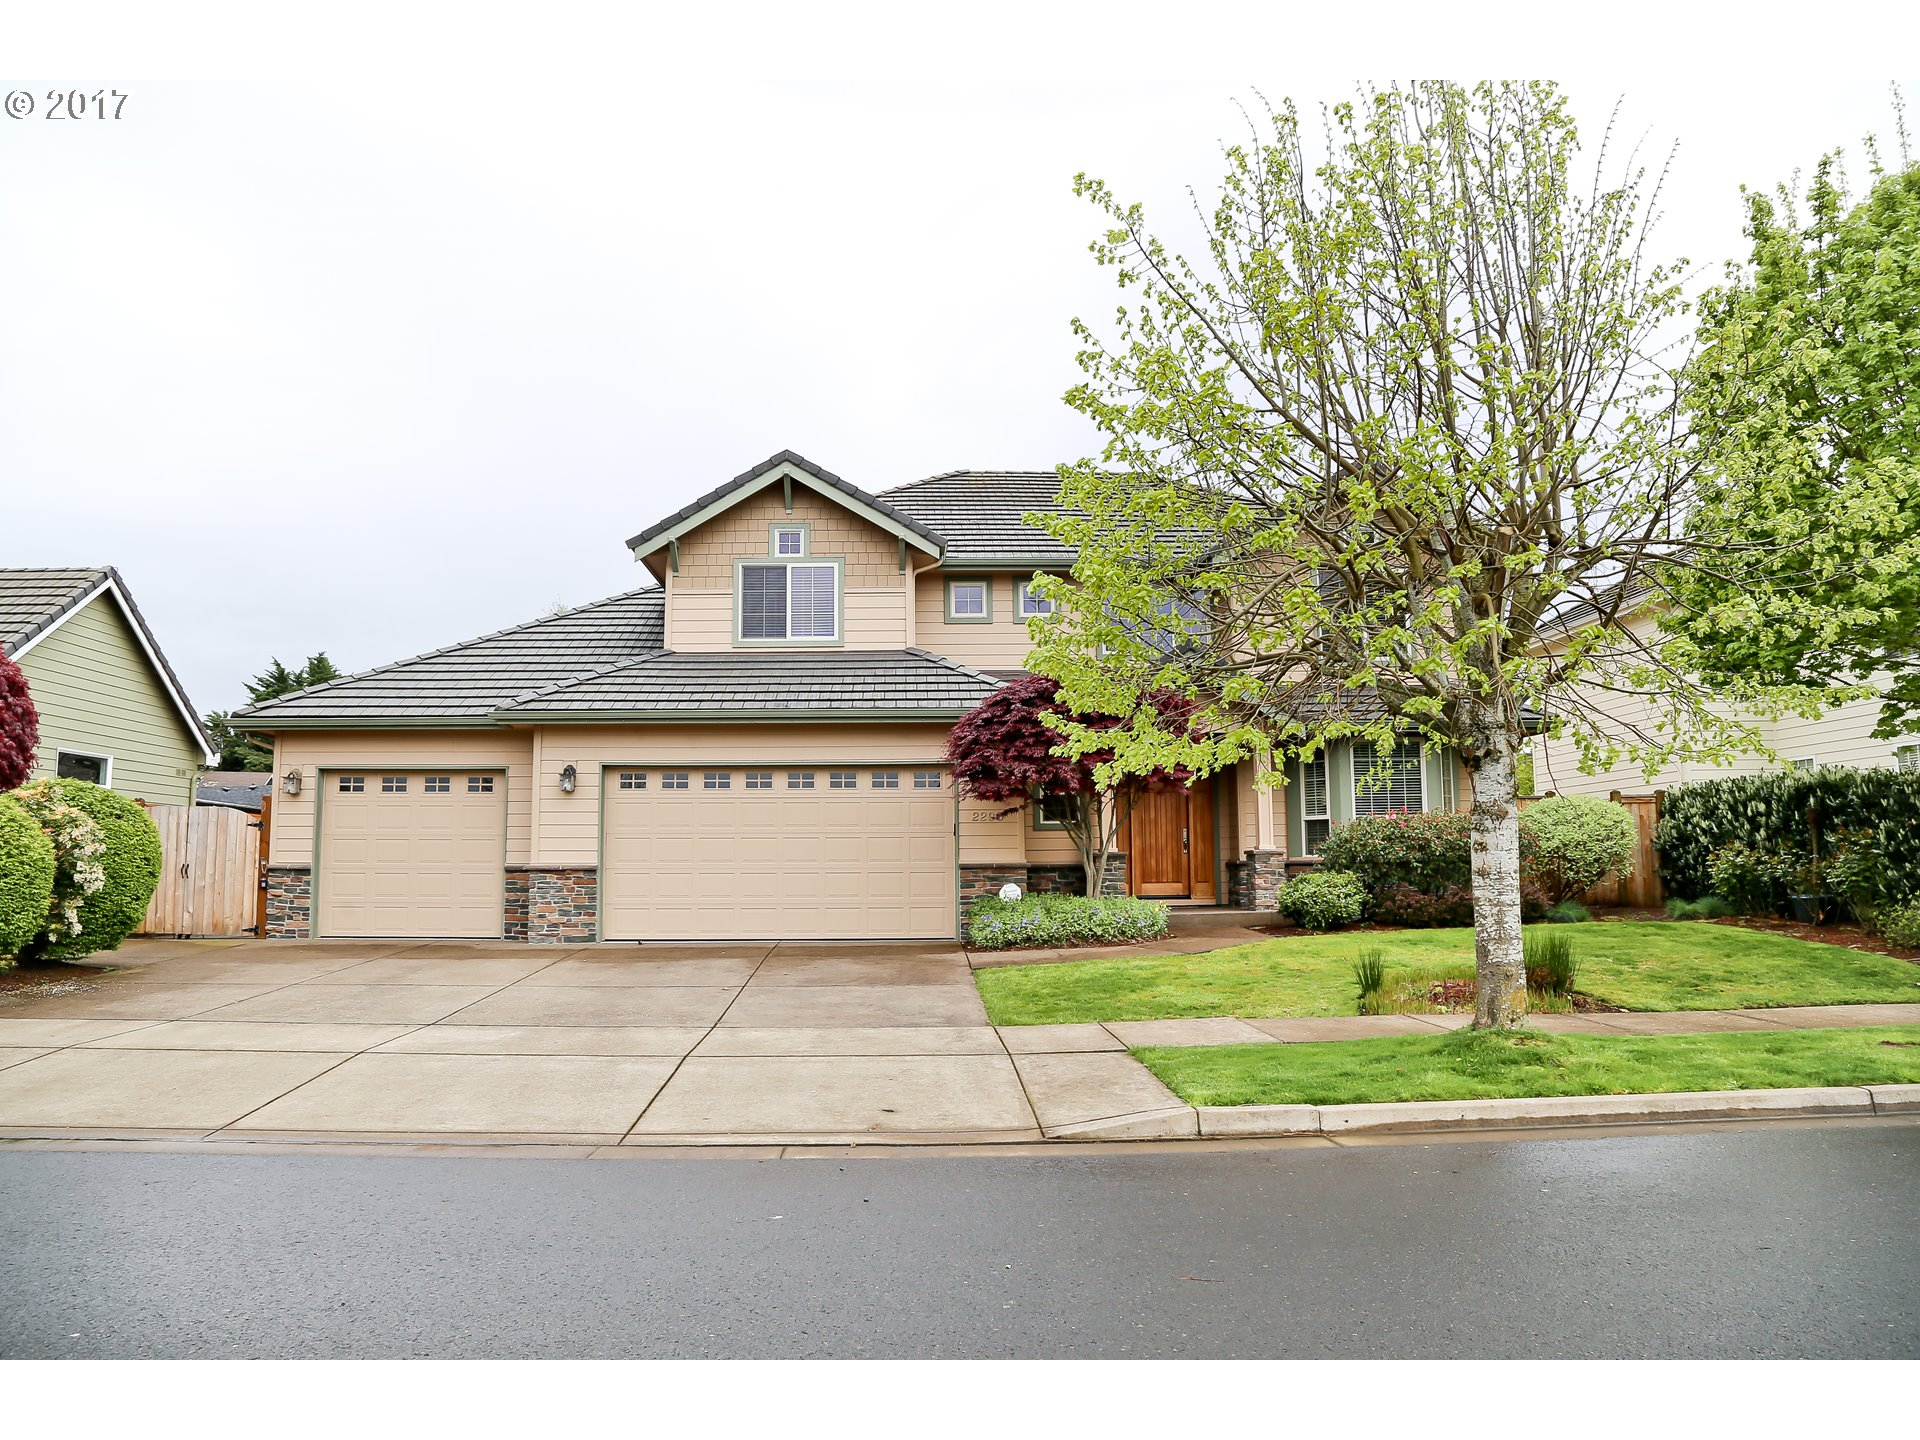 2290 COMSTOCK AVE, Eugene, OR 97408